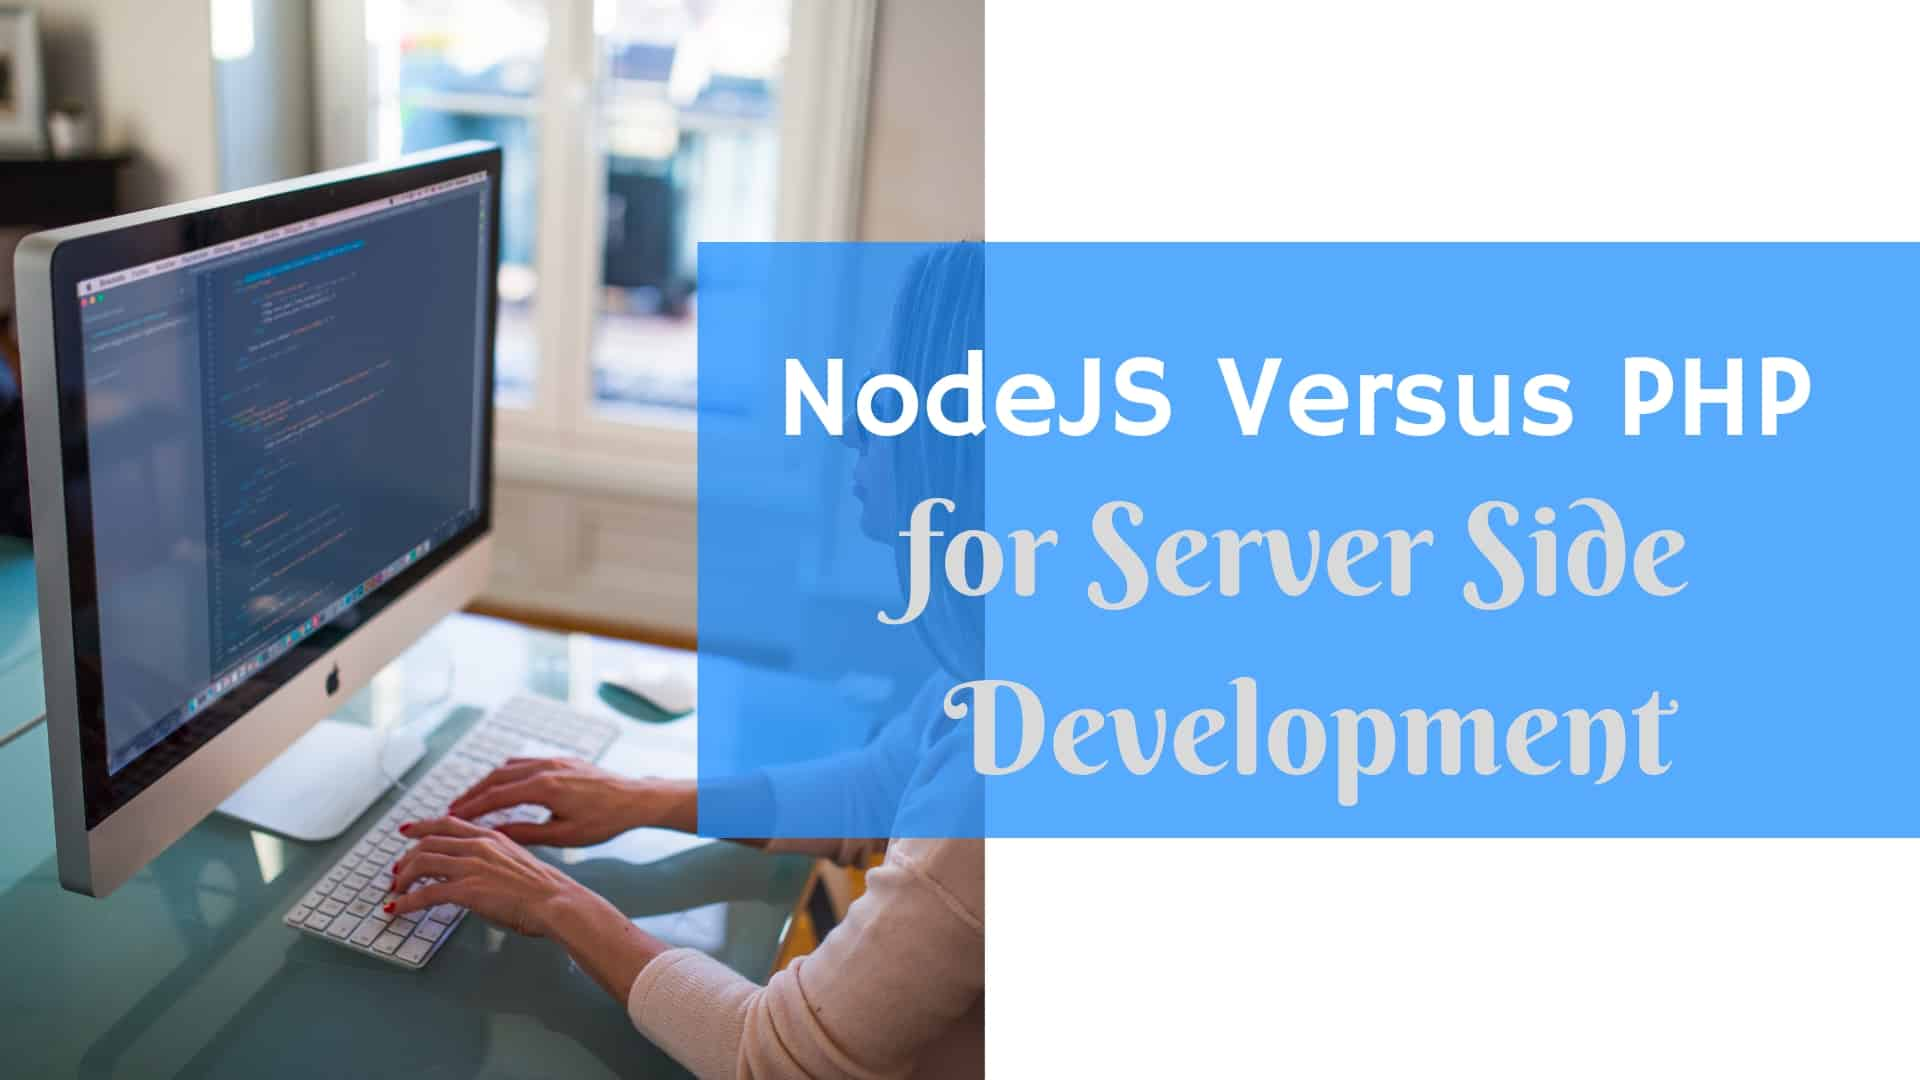 NodeJS Versus PHP For Server Side Development